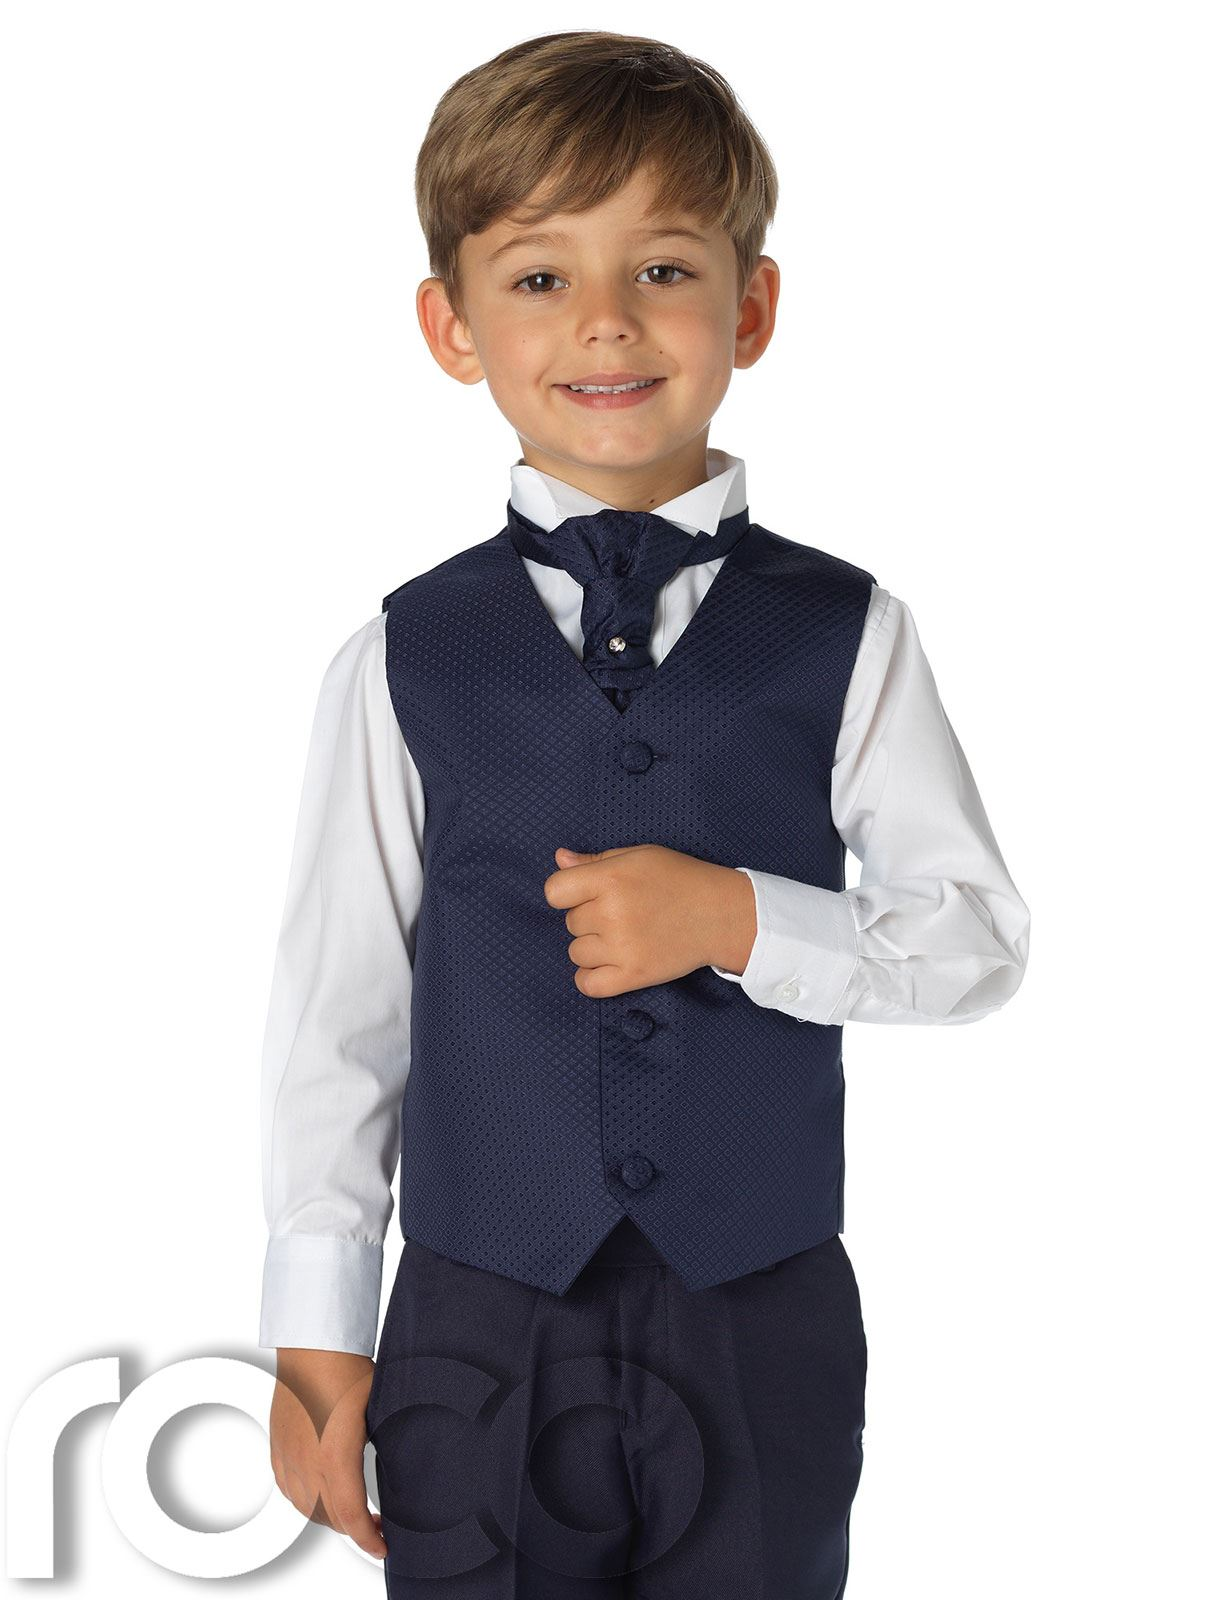 wedding waistcoats With over four hundred men's and boys' wedding waistcoats to choose from, there really is something to suit everyone in our collection. Whatever your budget, our stunning selection of plain and patterned waistcoats are available in a whole range of colours, all at very reasonable prices.